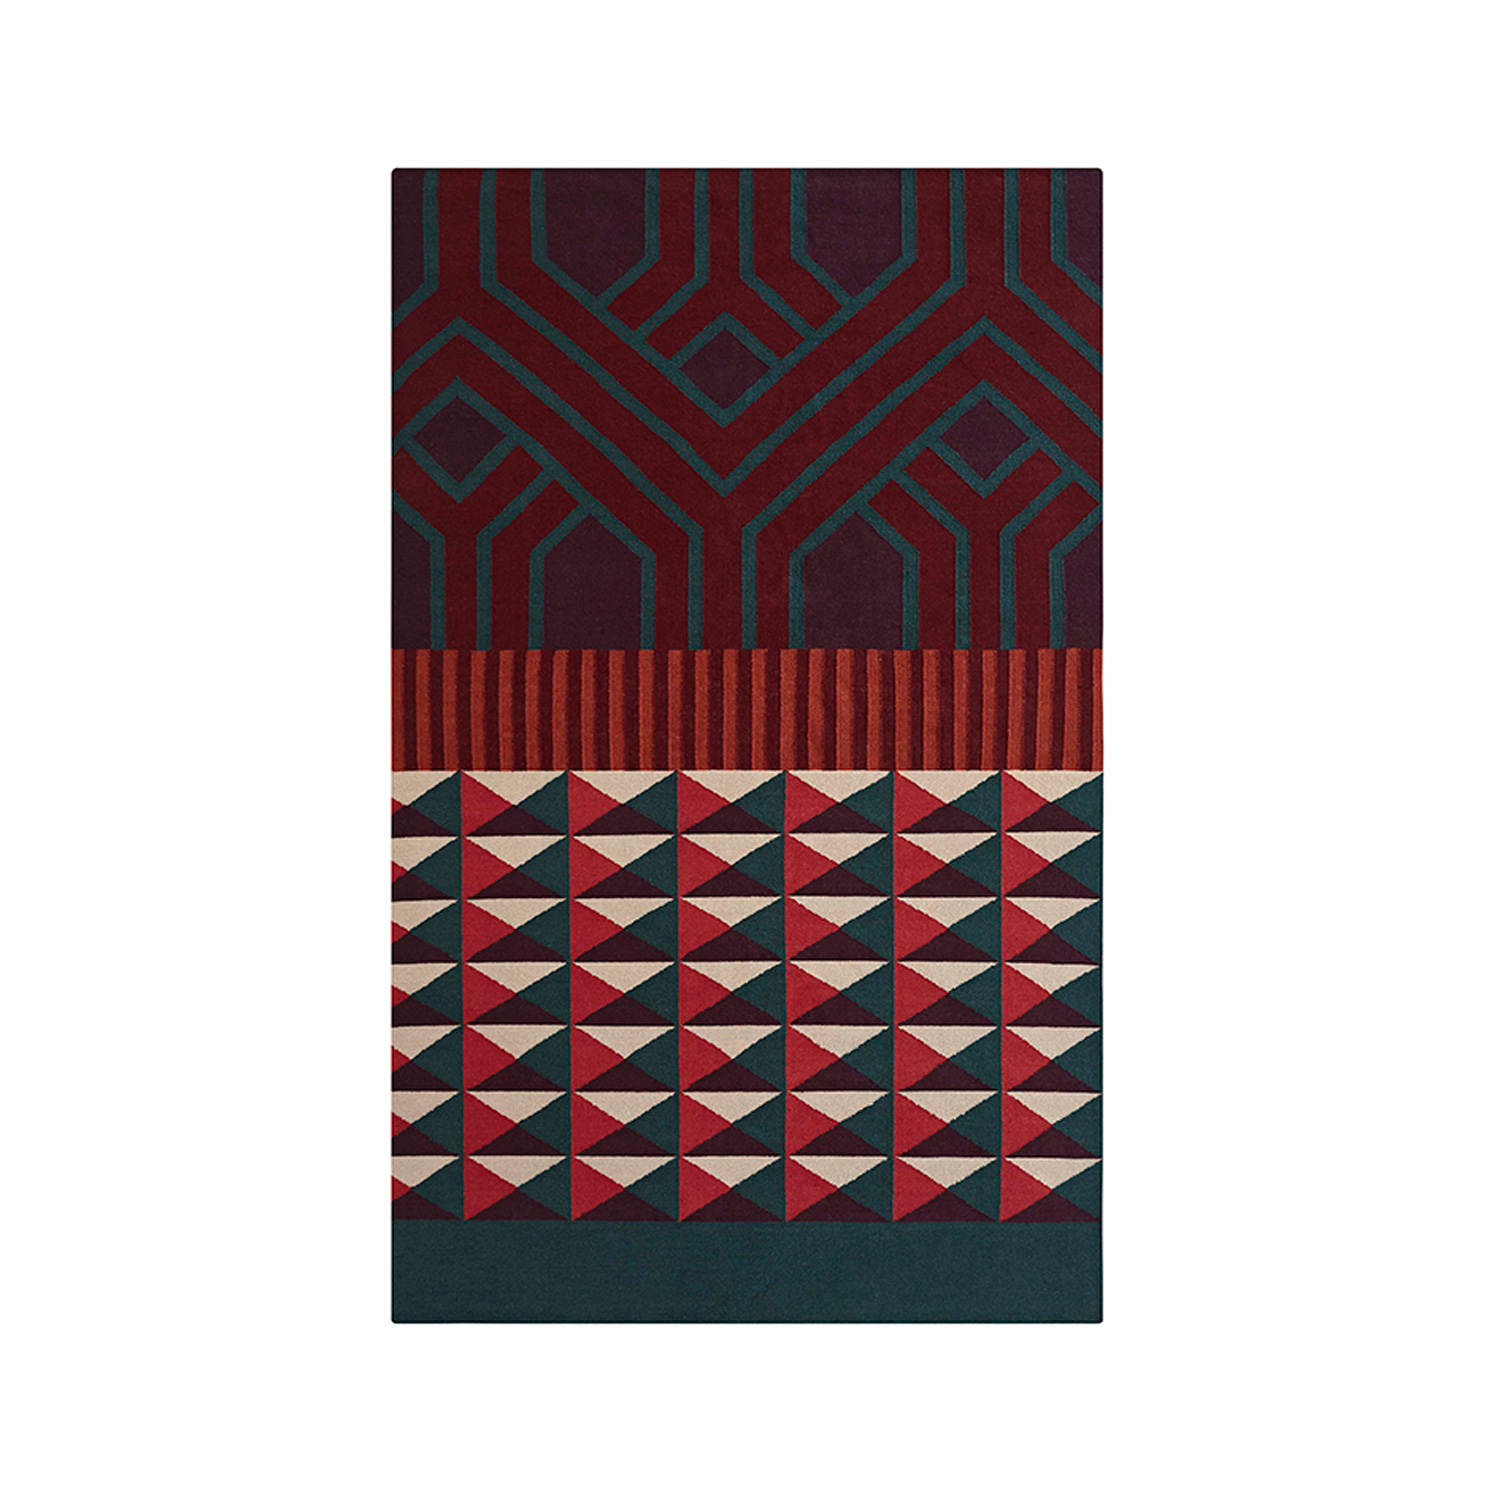 Ndebele Rug - The Ndebele rugs are inspired by the culture of the African Ndebele people, known for their colourful facades. These are traditionally painted by women, who paint and decorate their houses with murals of geometric motifs and bright colours. The Ndebele kilims of ethnic style and contemporary language playfully combine intense tones and rotund designs with the geometry of their strokes. A graphic reading of ethnic roots reinterpreted into a more modern look. Due to the handmade nature of the GAN product, slight variations in size, colour, finish are normal. 